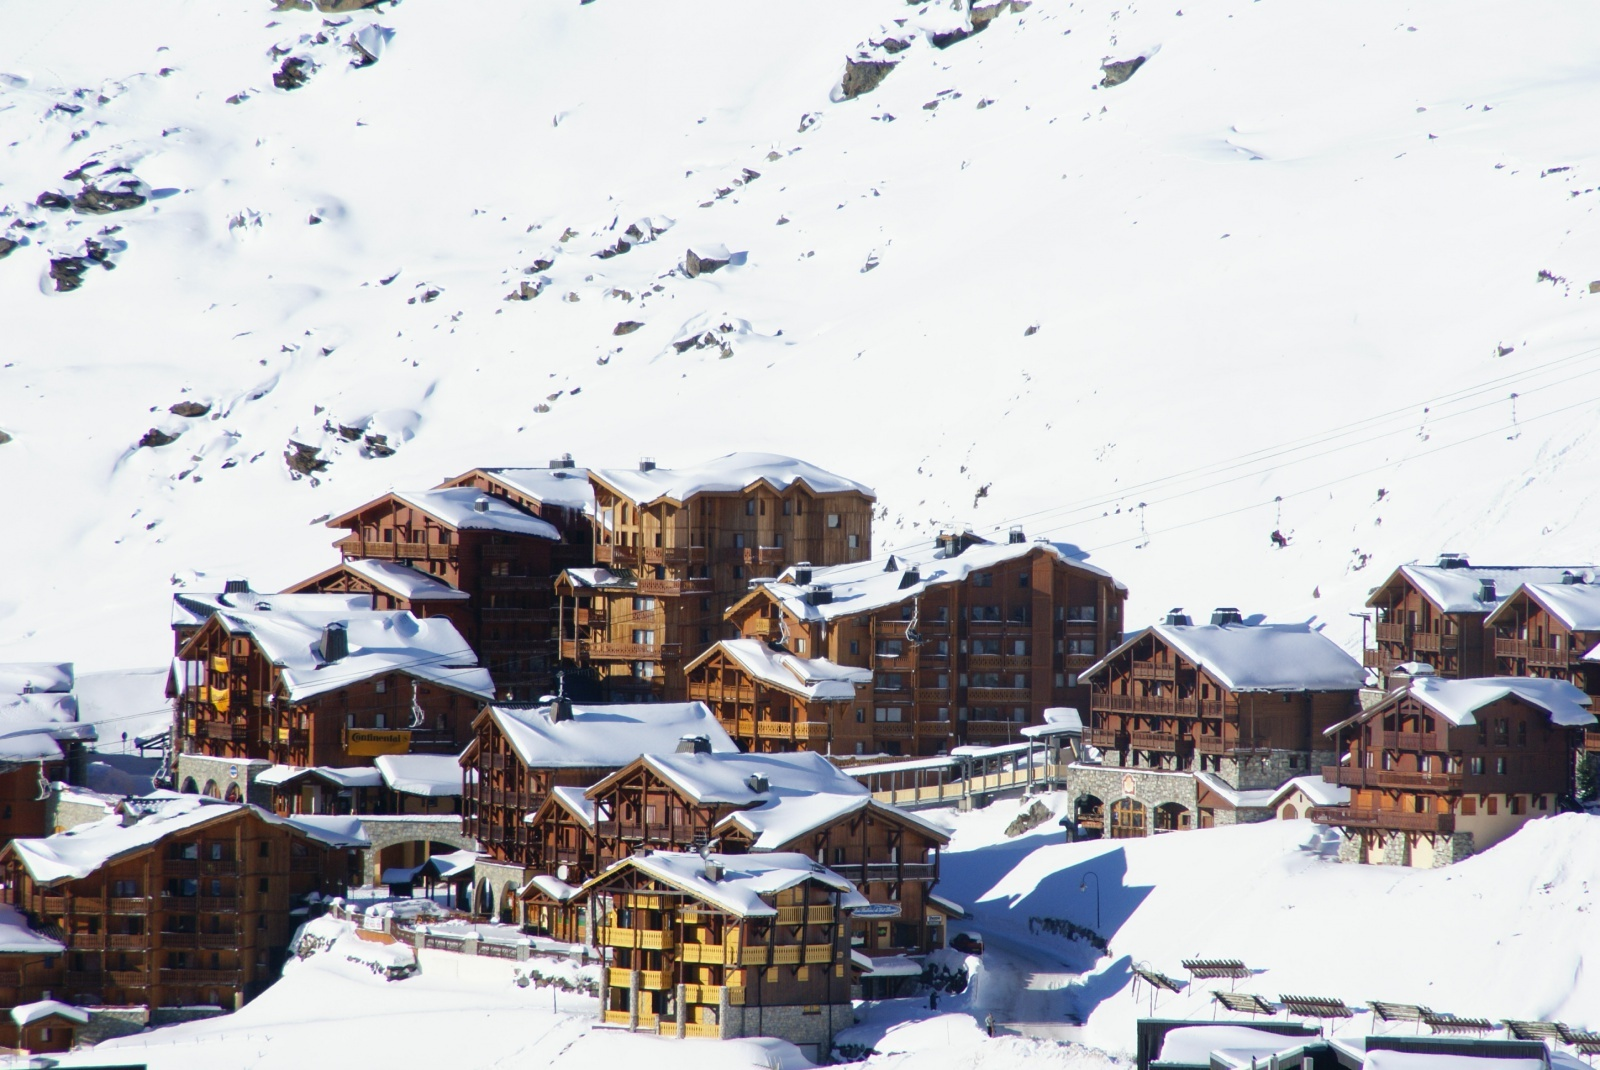 An image of Chalet Altitude nestled amongst the snowy mountains